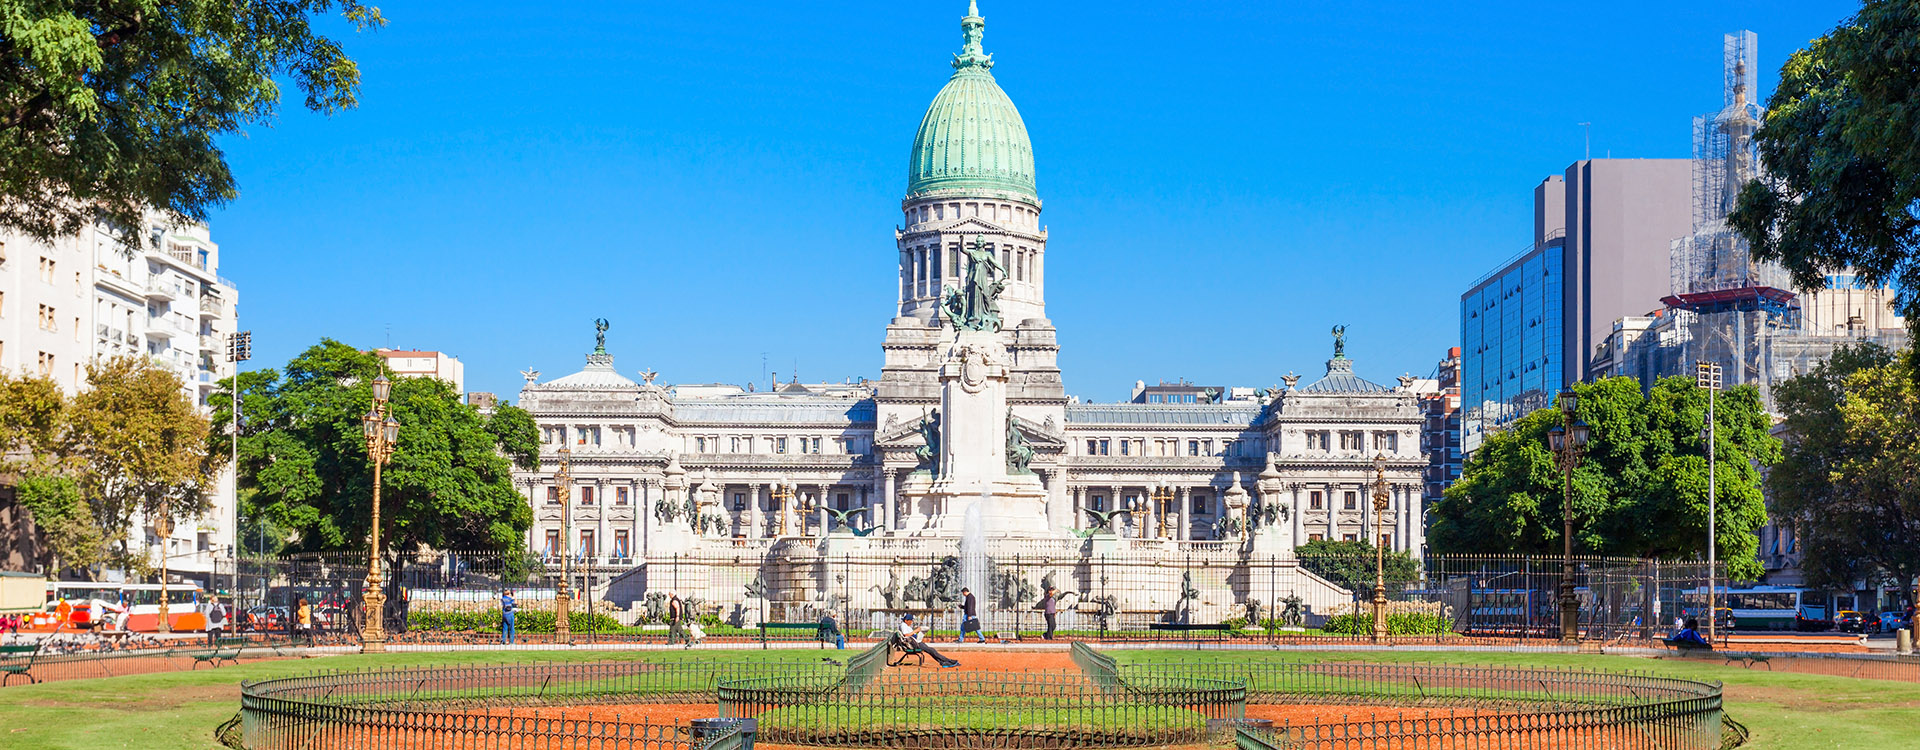 The Palace of the Argentine National Congress (Palacio del Congreso) is a seat of the Argentine National Congress in Buenos Aires, Argentina